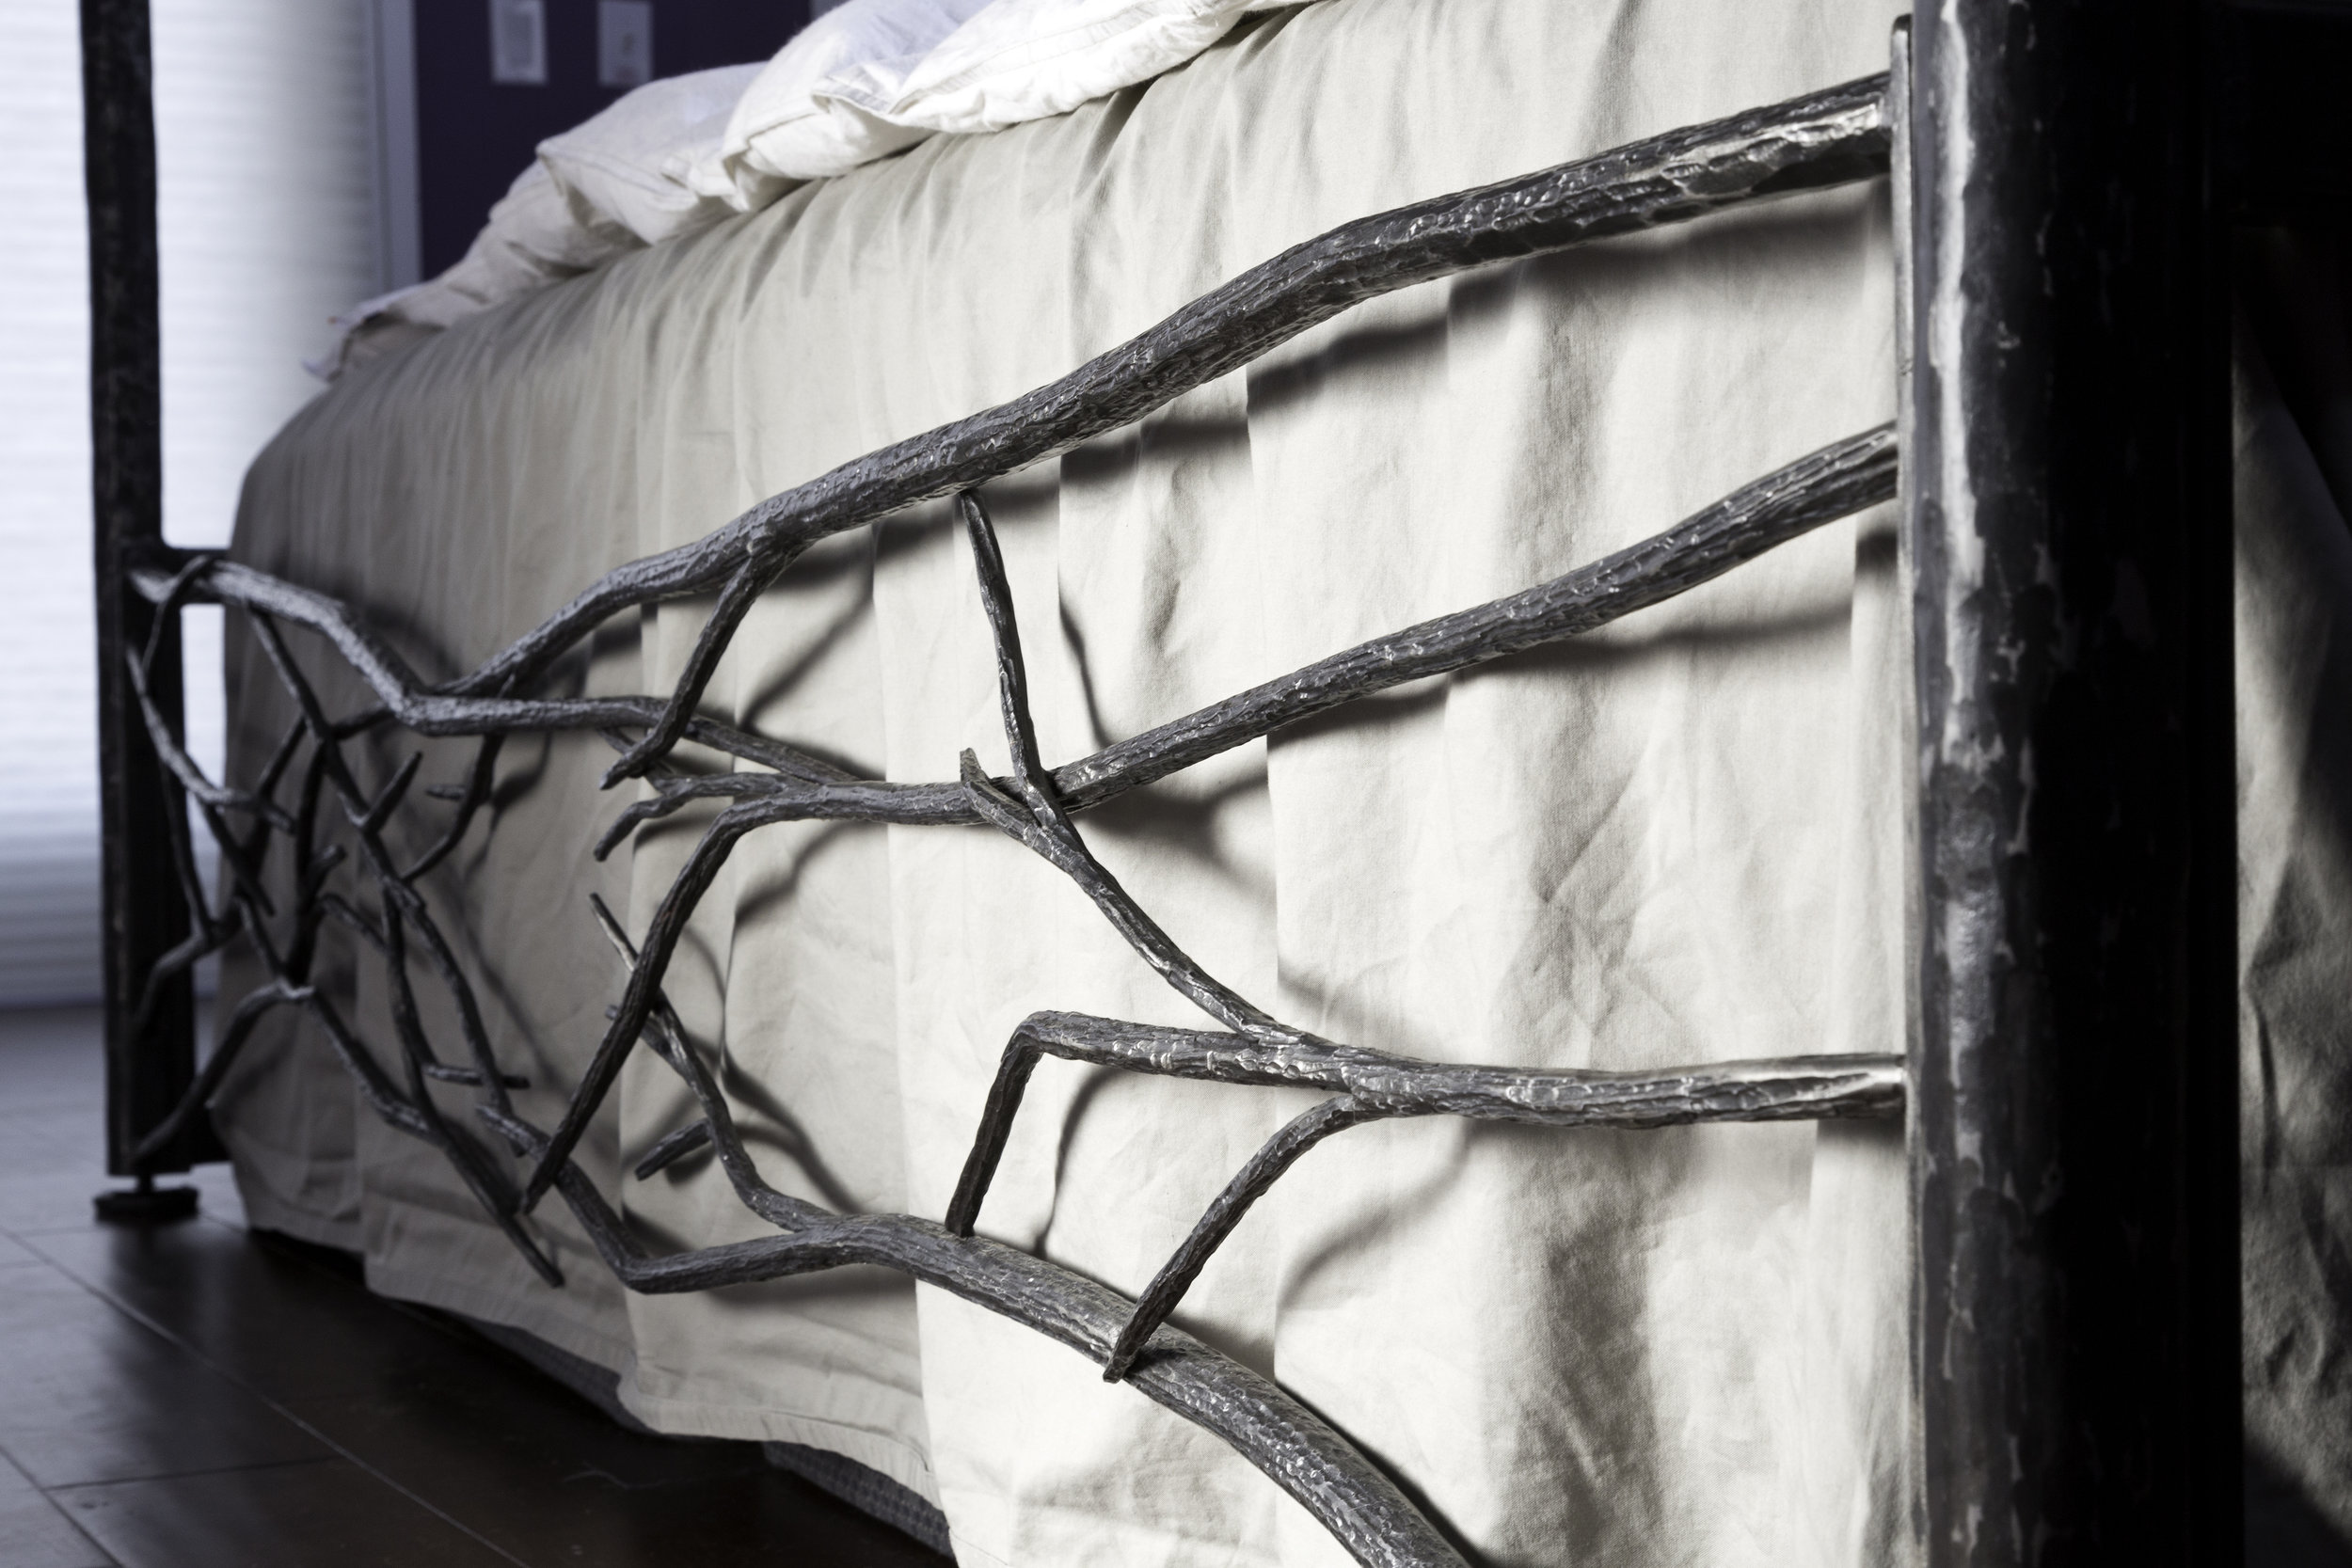 FORGED BED FRAME WITH CANOPY (detail of footboard)